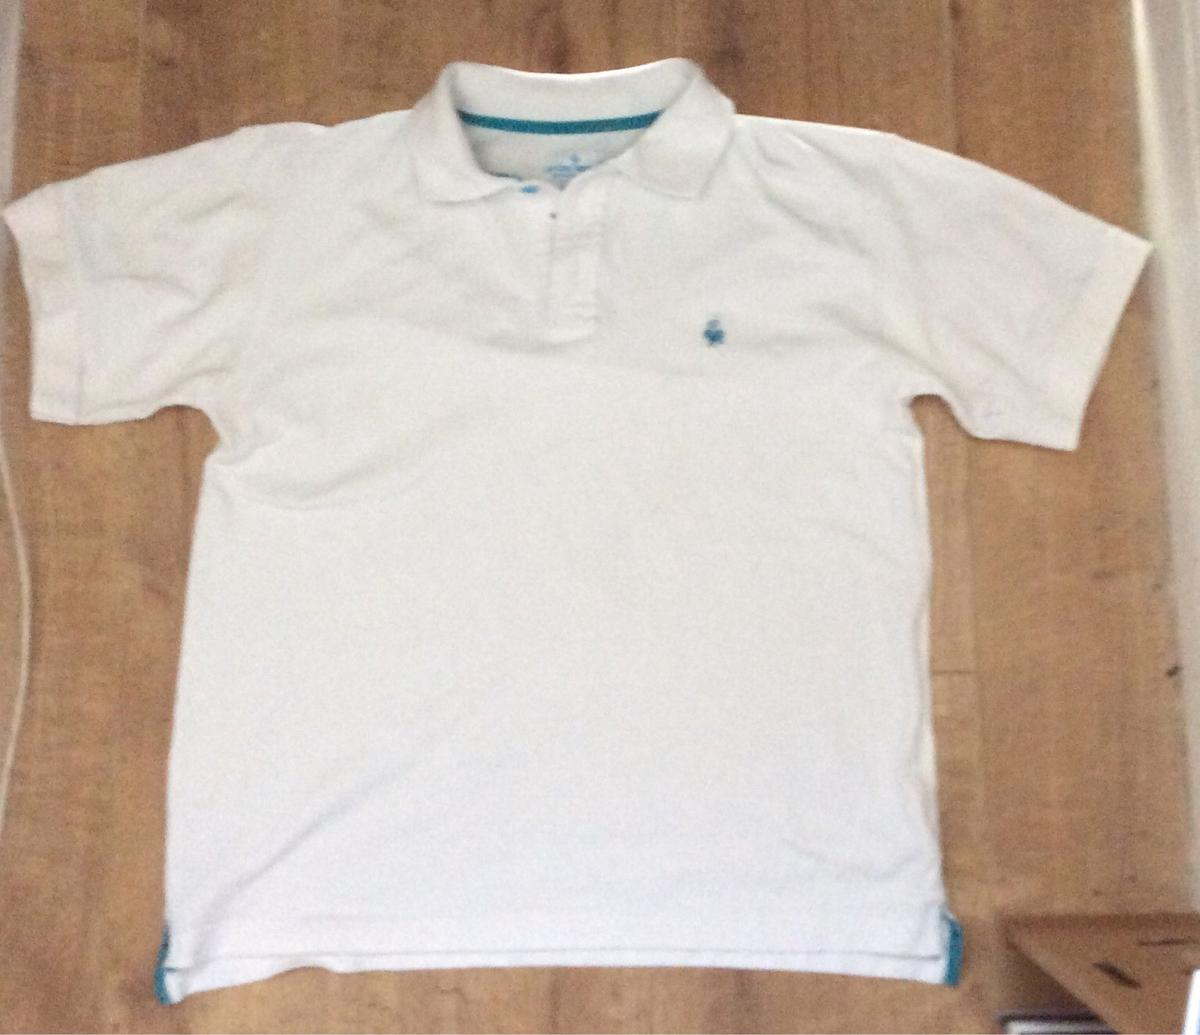 98cd899a074 Boys Le Coq Sportif White Polo Shirt in BS5 Bristol for £1.00 for ...